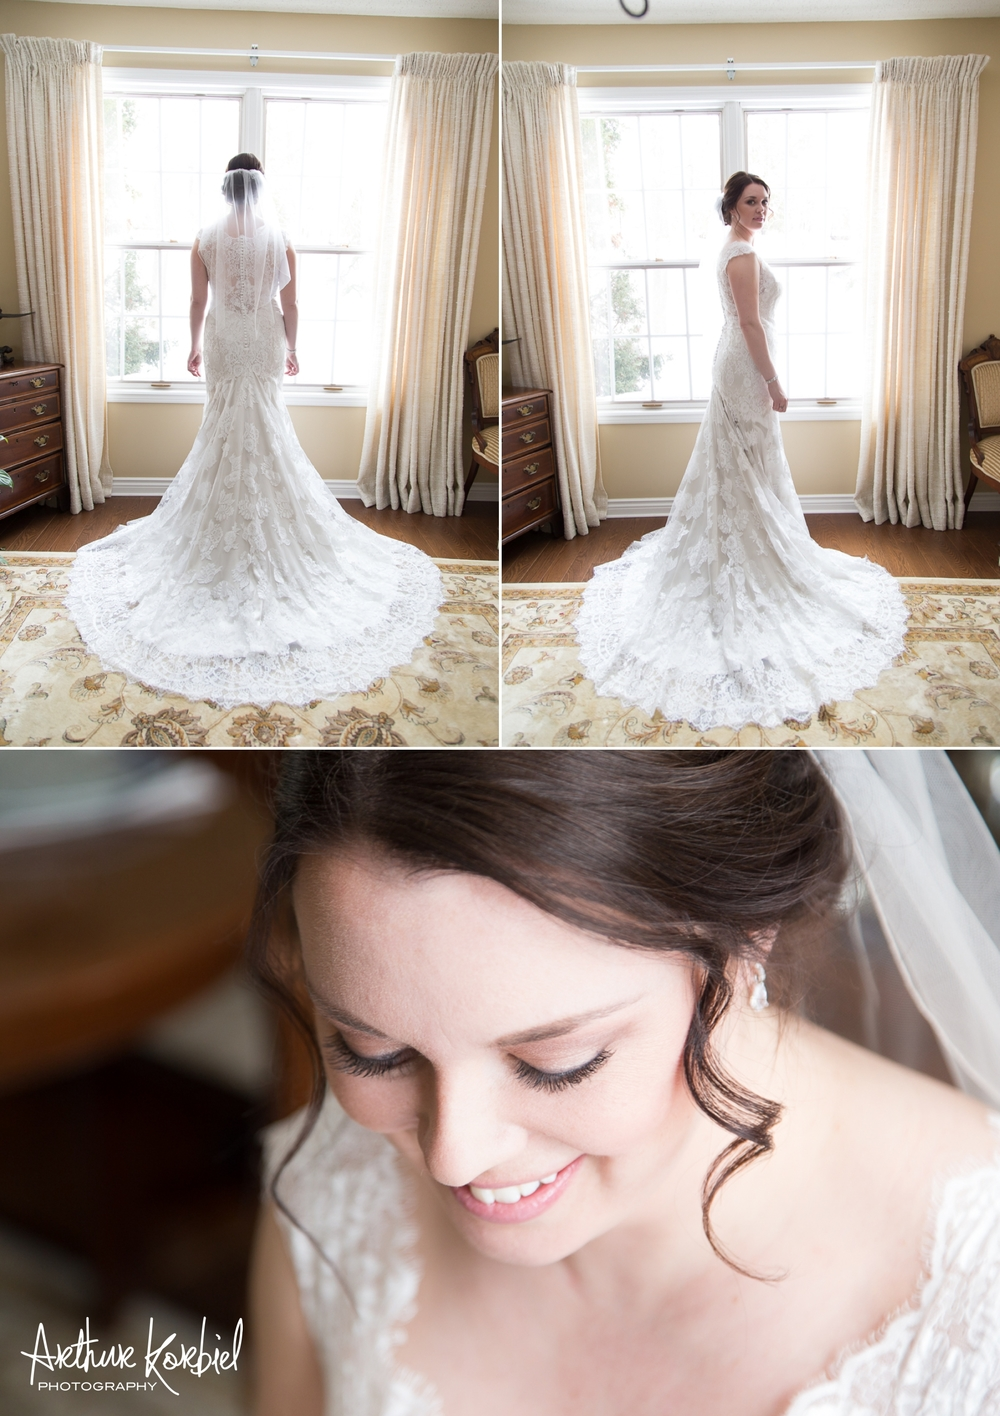 Arthur Korbiel Photography - London Wedding Photographer - Windermere Manor _003.jpg